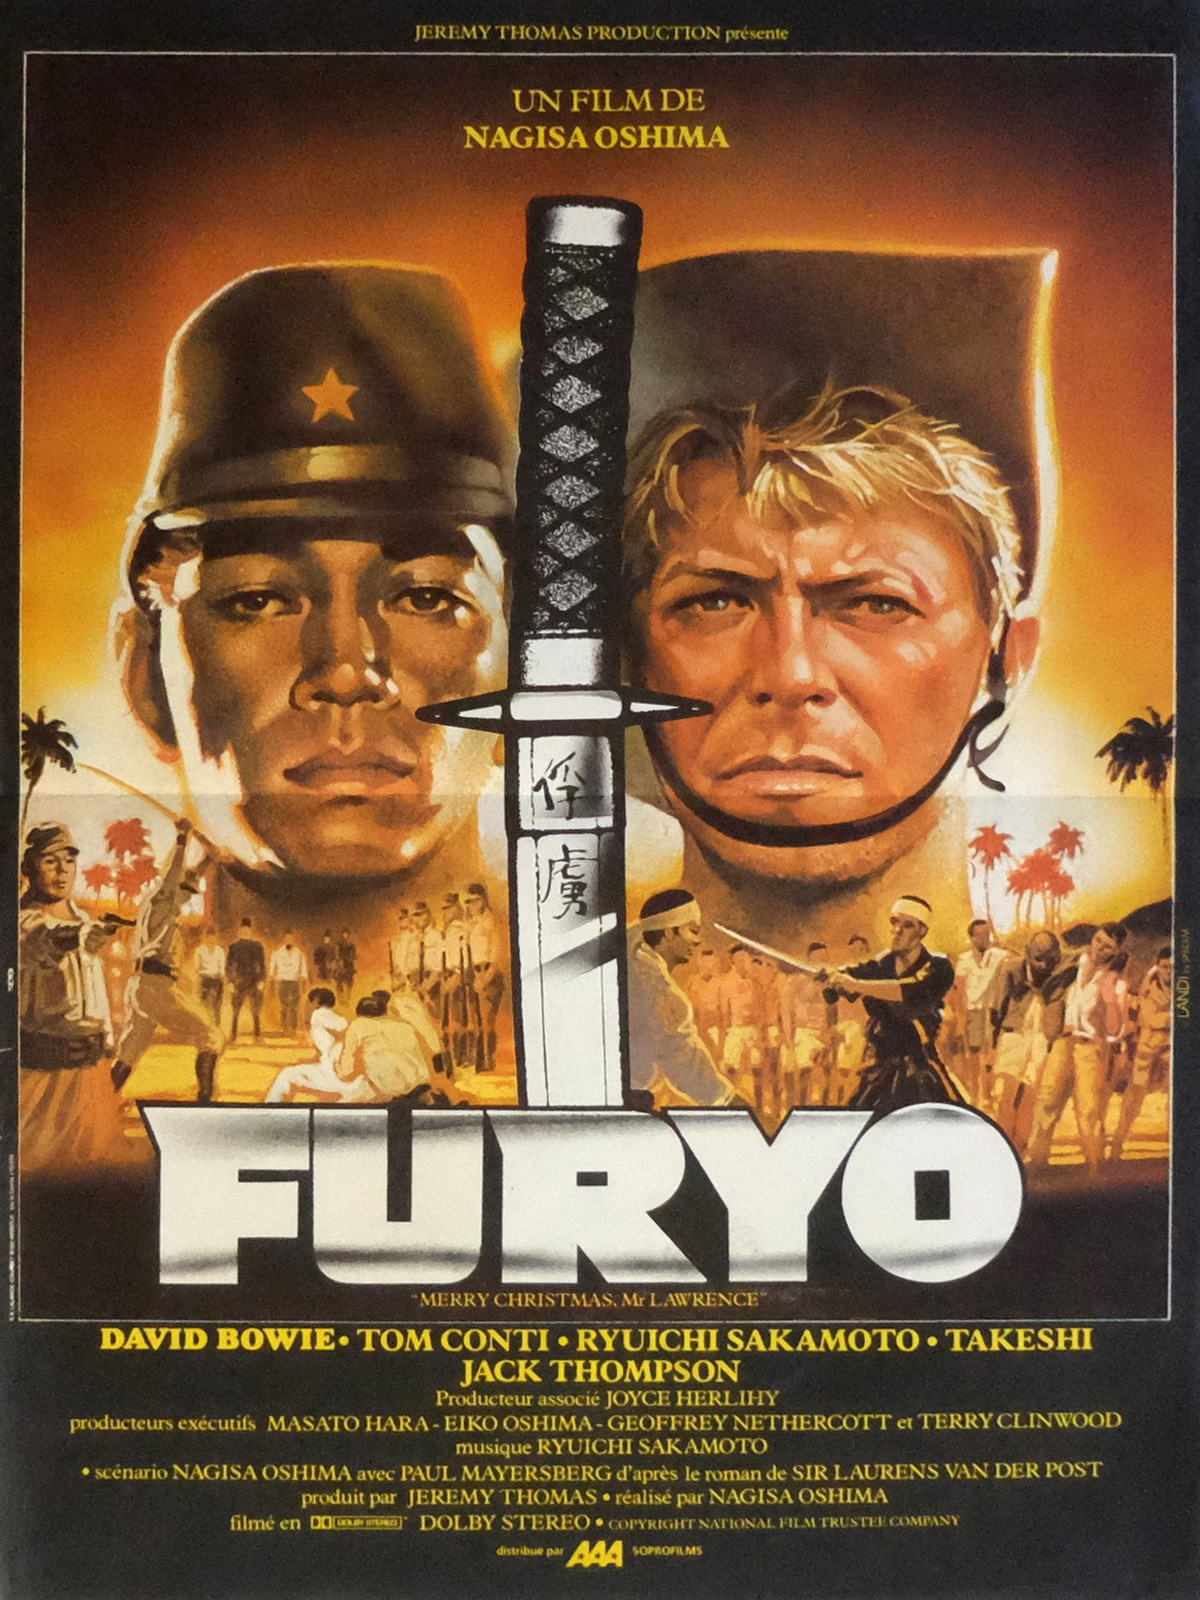 MERRY CHRISTMAS MR LAWRENCE Movie Poster